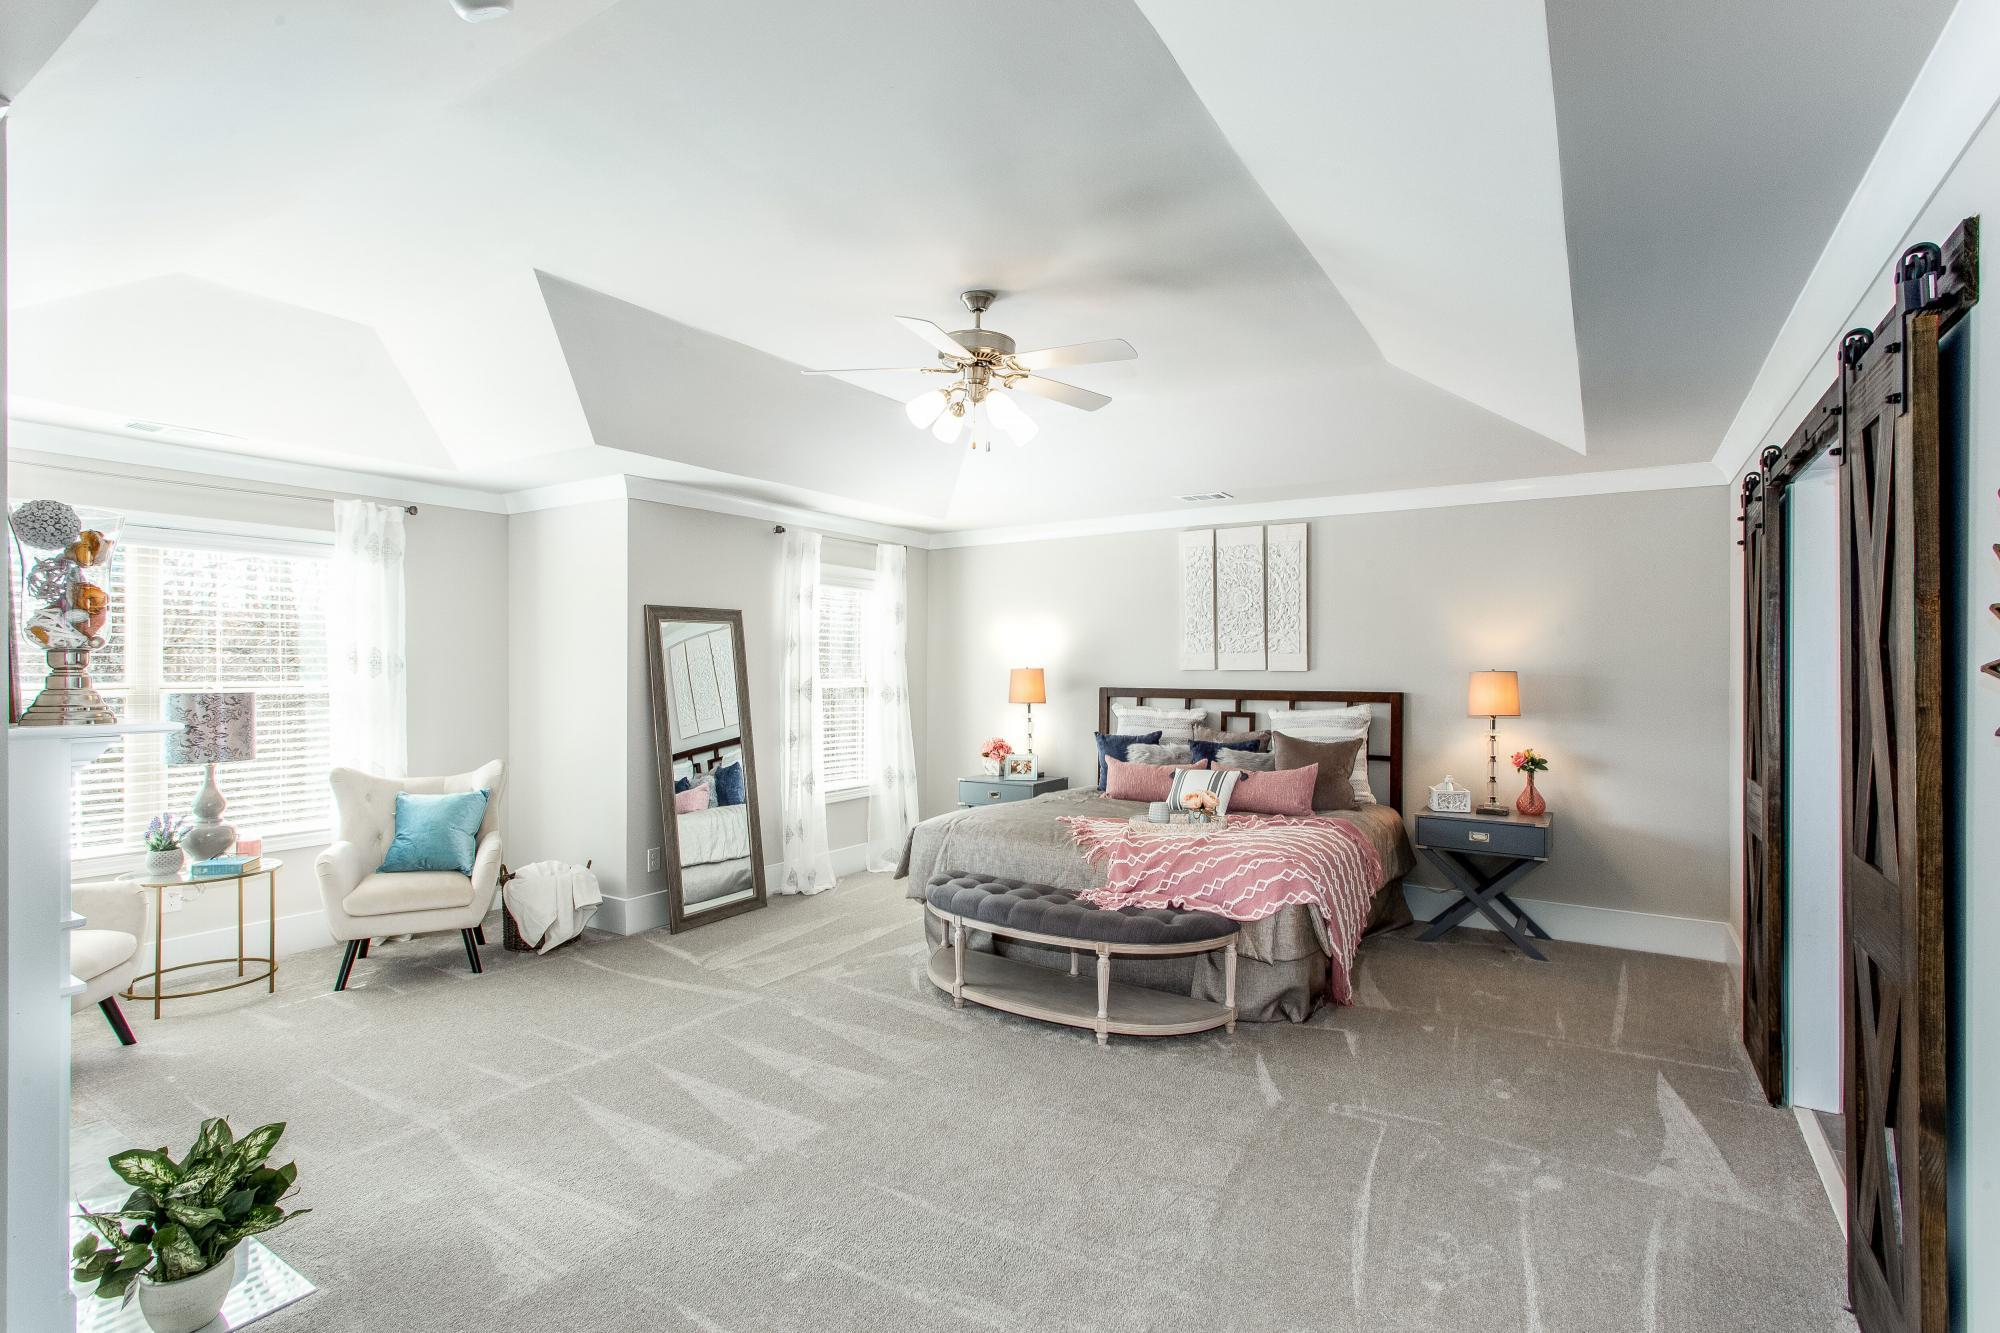 Bedroom featured in The Charleston By Almont Homes in Atlanta, GA